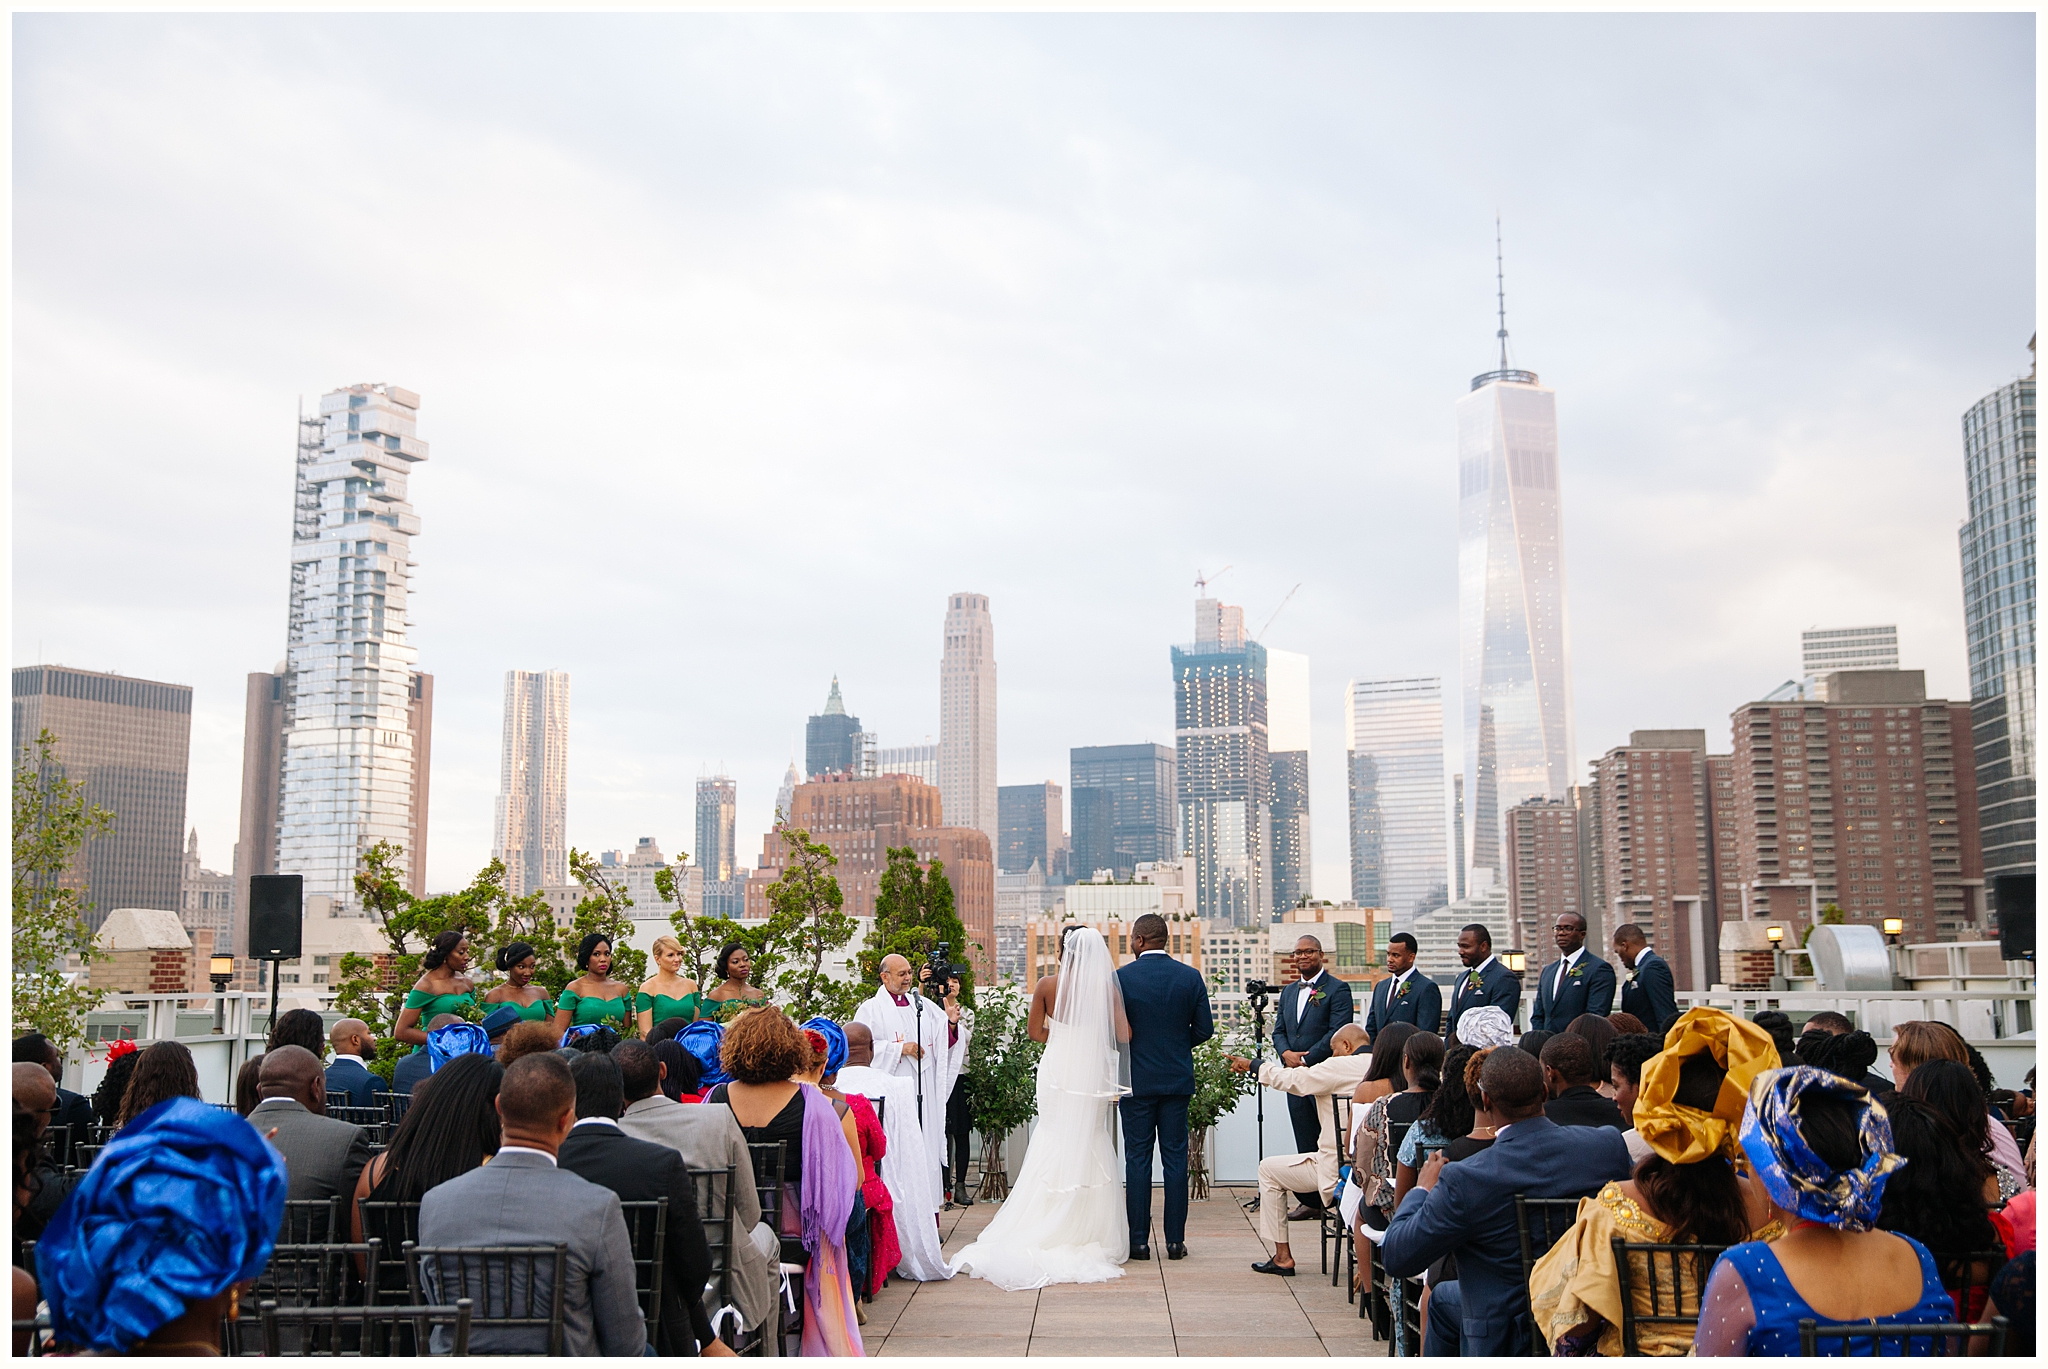 NYC Tribeca Rooftop Wedding Photographer_0035.jpg